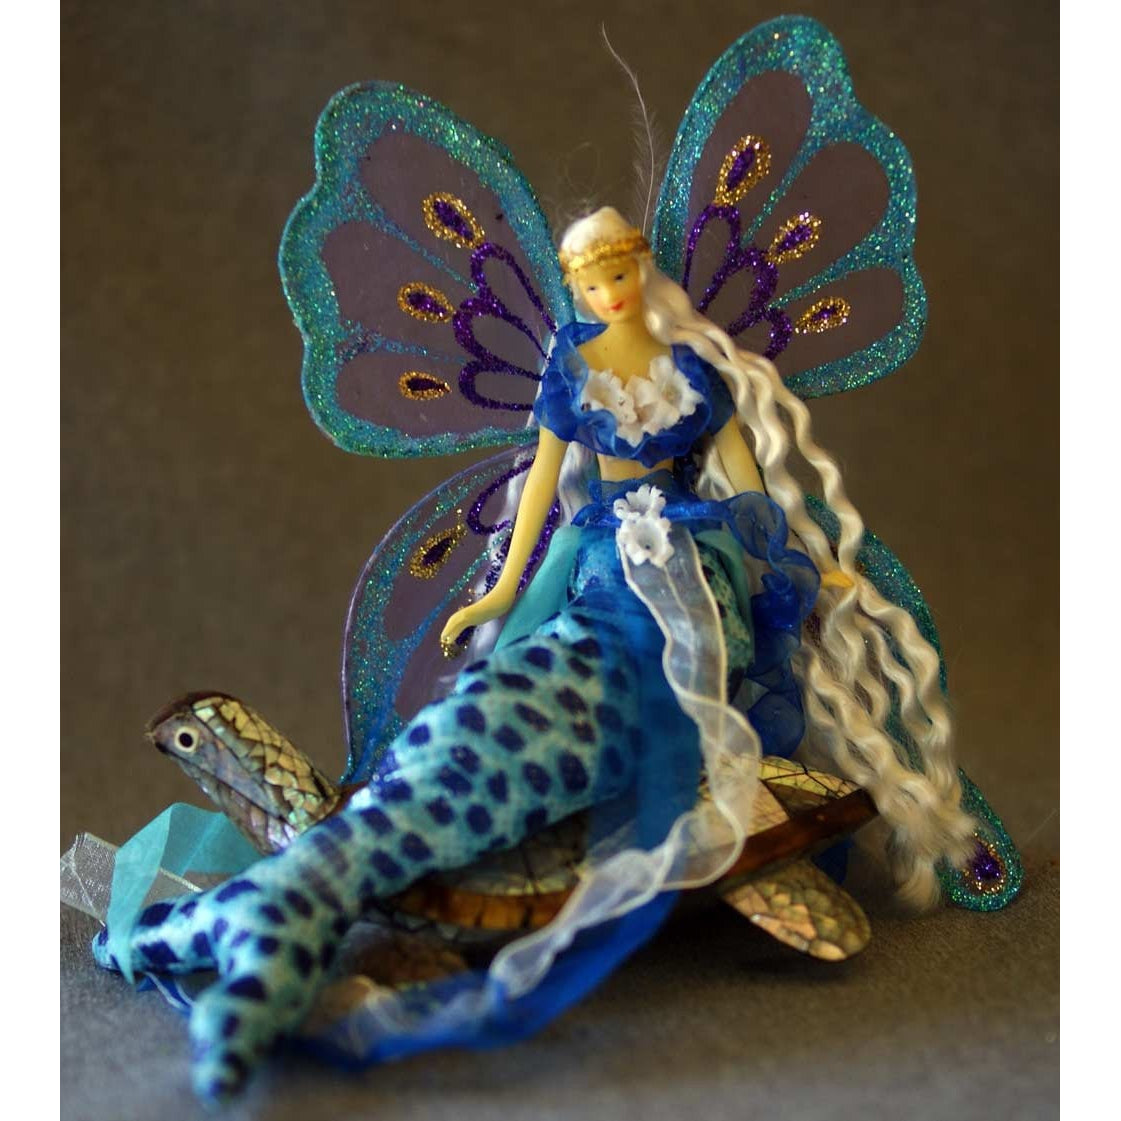 Mermaid tail doll decoration  turquiose costume underwater handmade doll